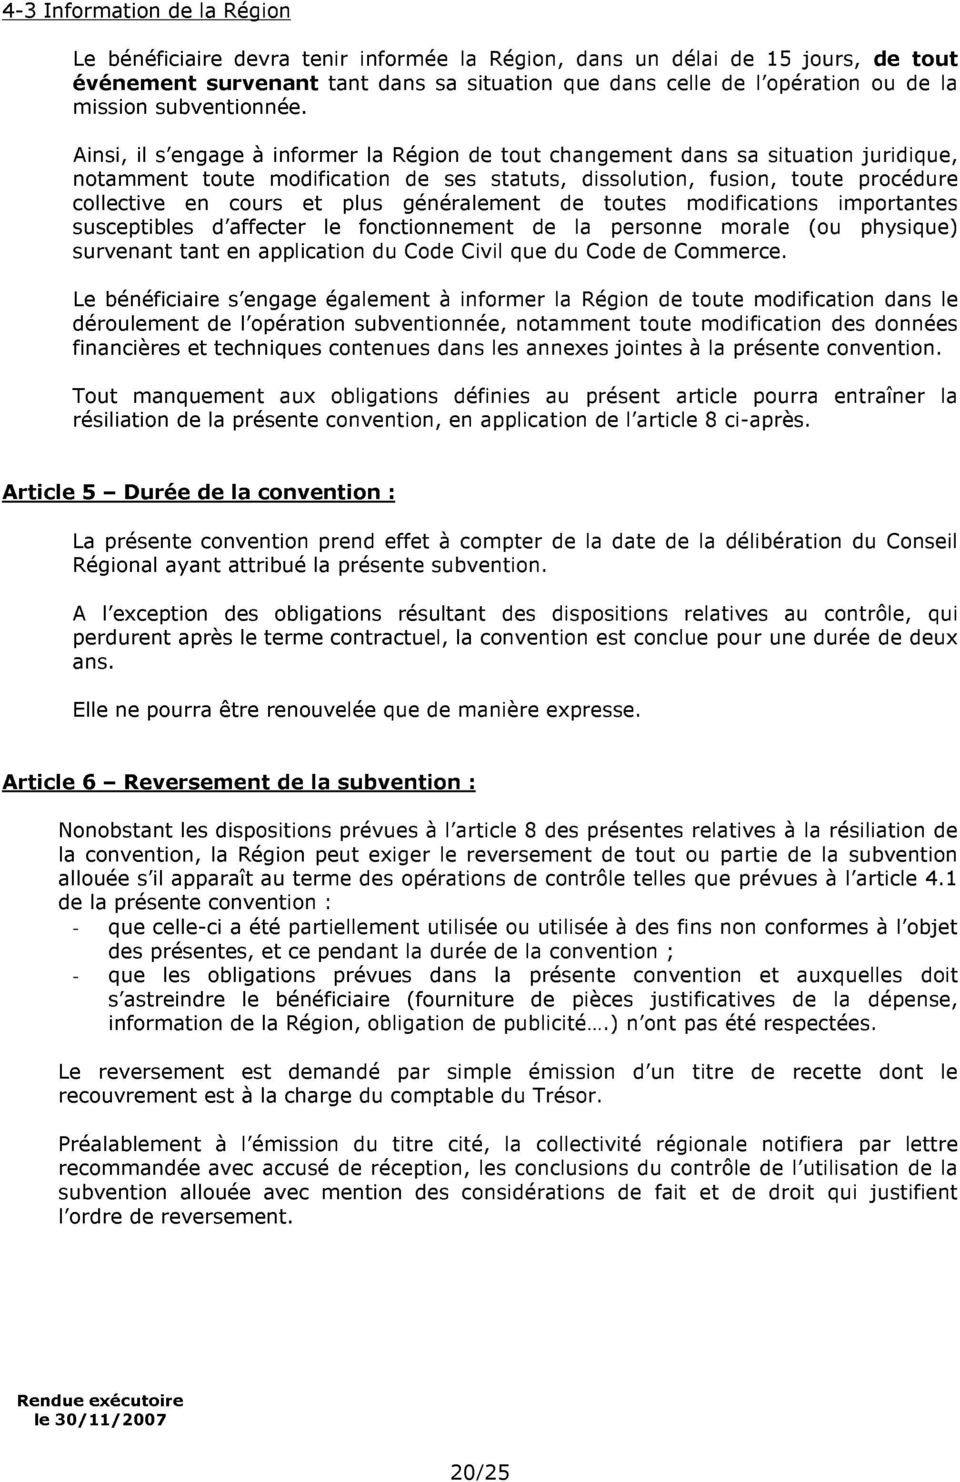 modifications importants suscptibls d affctr l fonctionnmnt d la prsonn moral (ou physiqu) survnant tant n application du Cod Civil qu du Cod d Commrc.